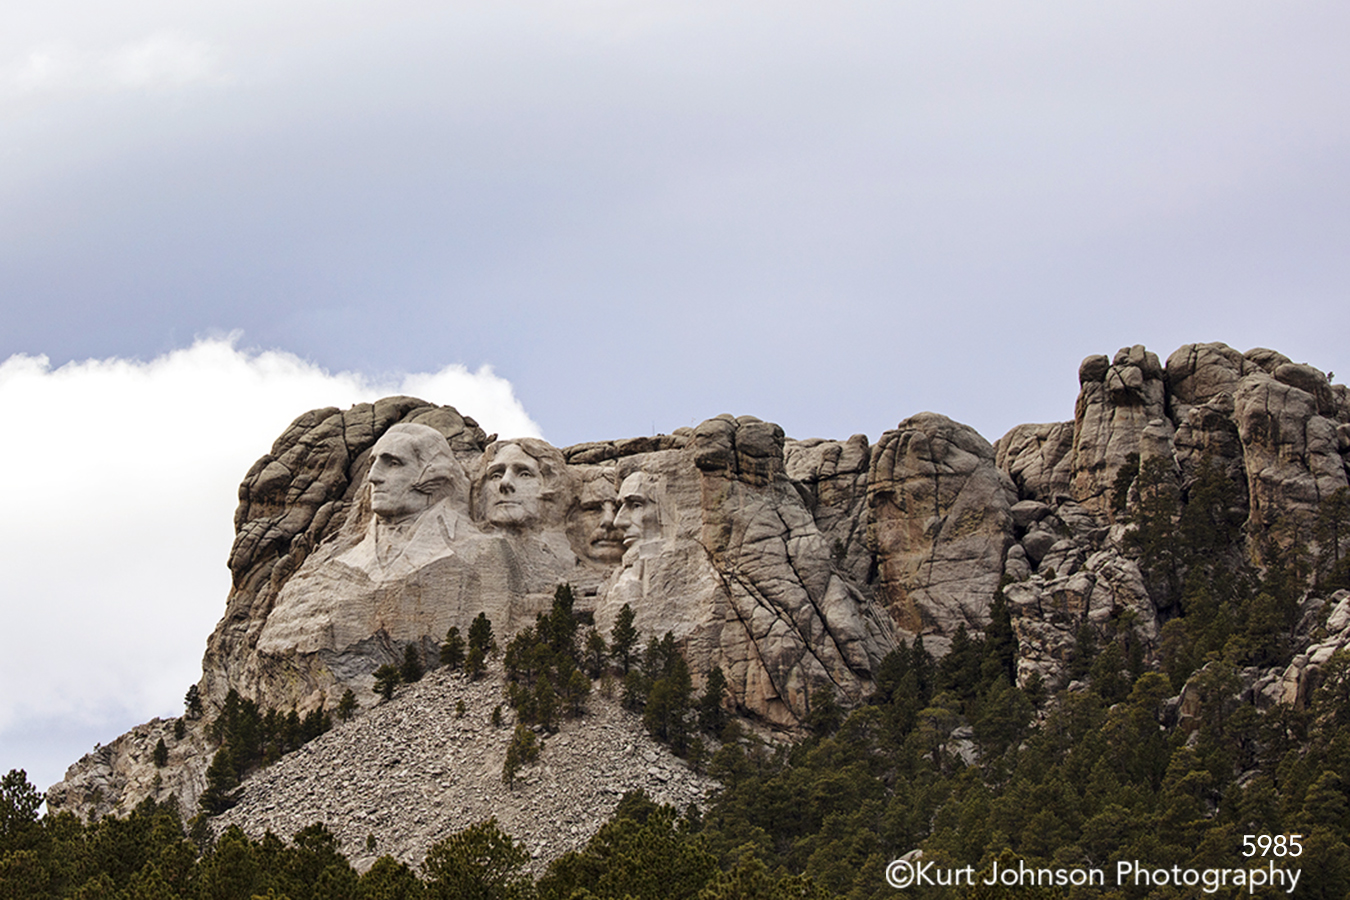 Dakotas Black Hills Mount Rushmore National Monument Dakotas South Dakota trees gray mountains sky clouds landscape